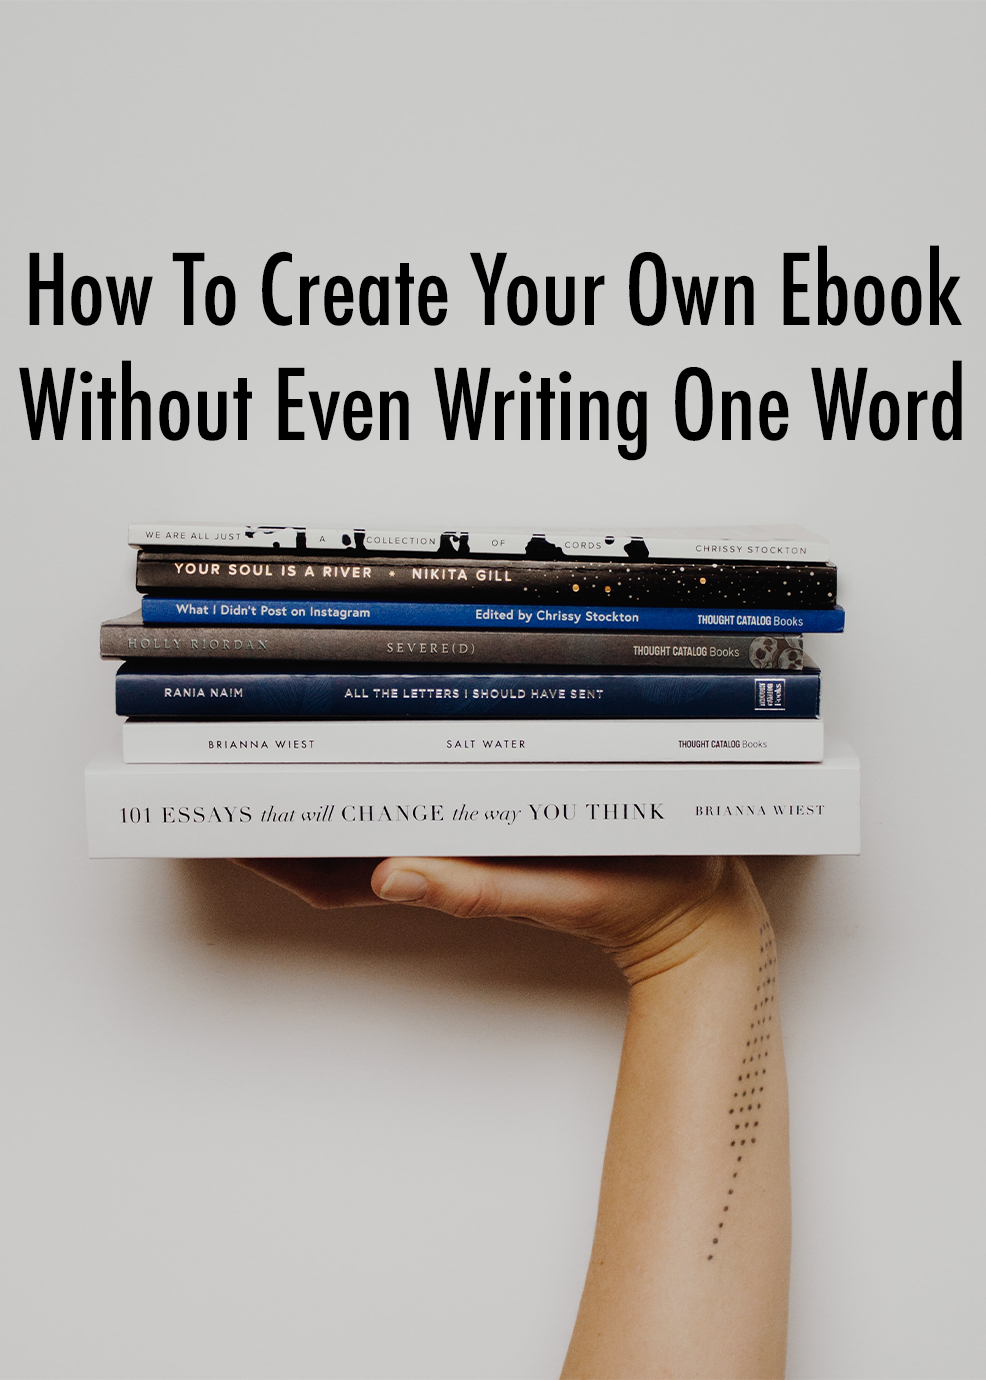 How To Create Your Own Ebook Without Even Writing One Word